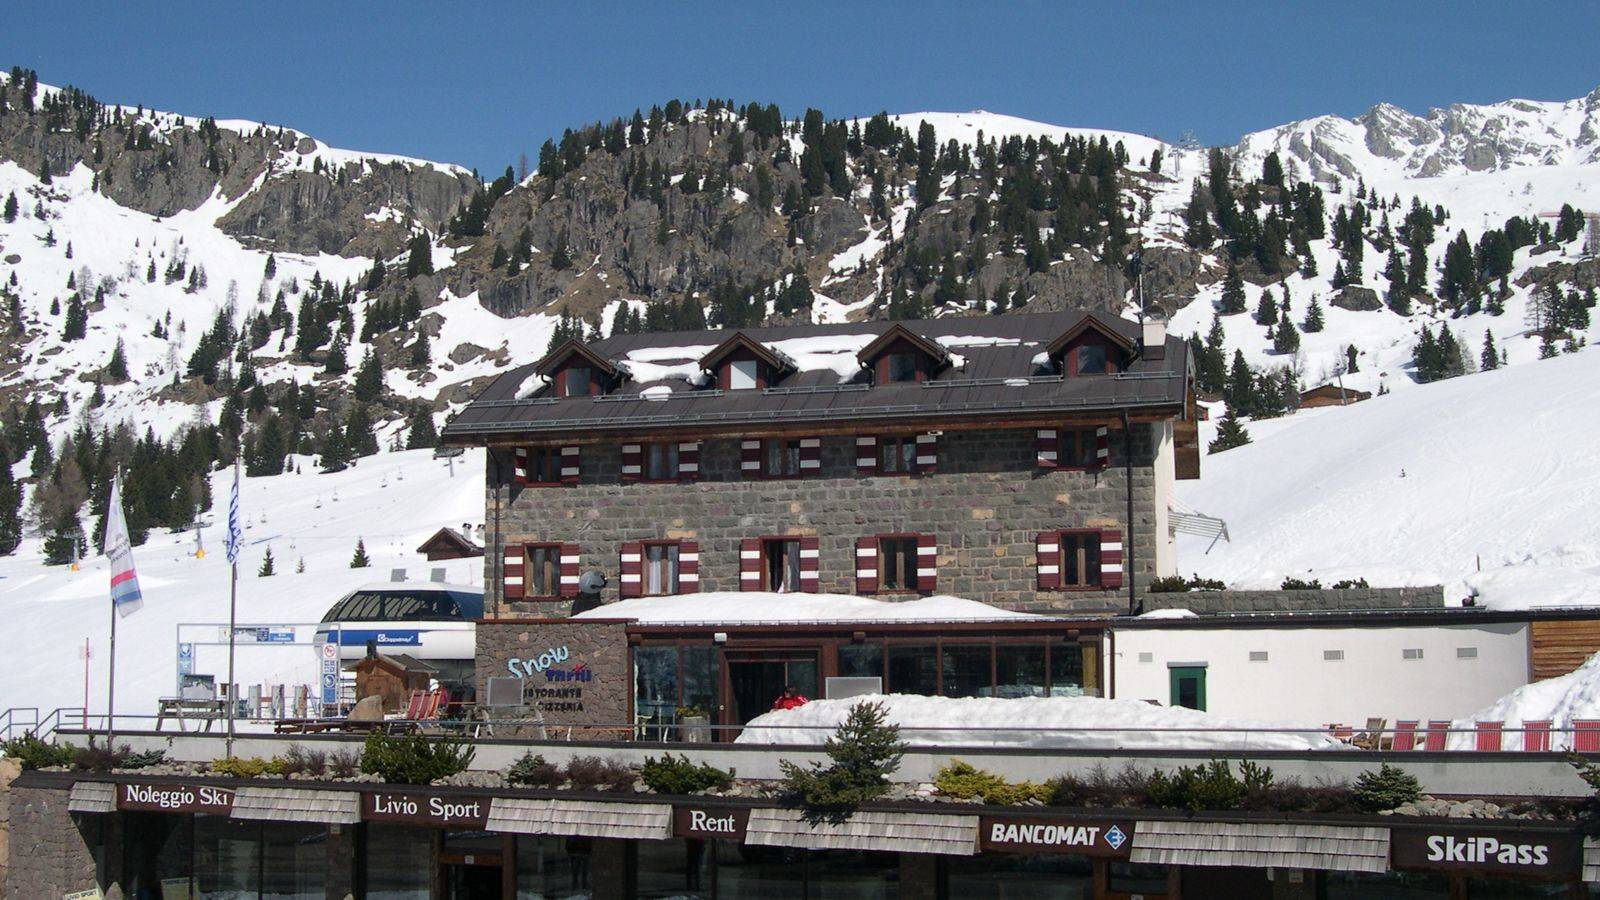 View of the facade of the Hotel Snowthrill in Passo San Pellegrino